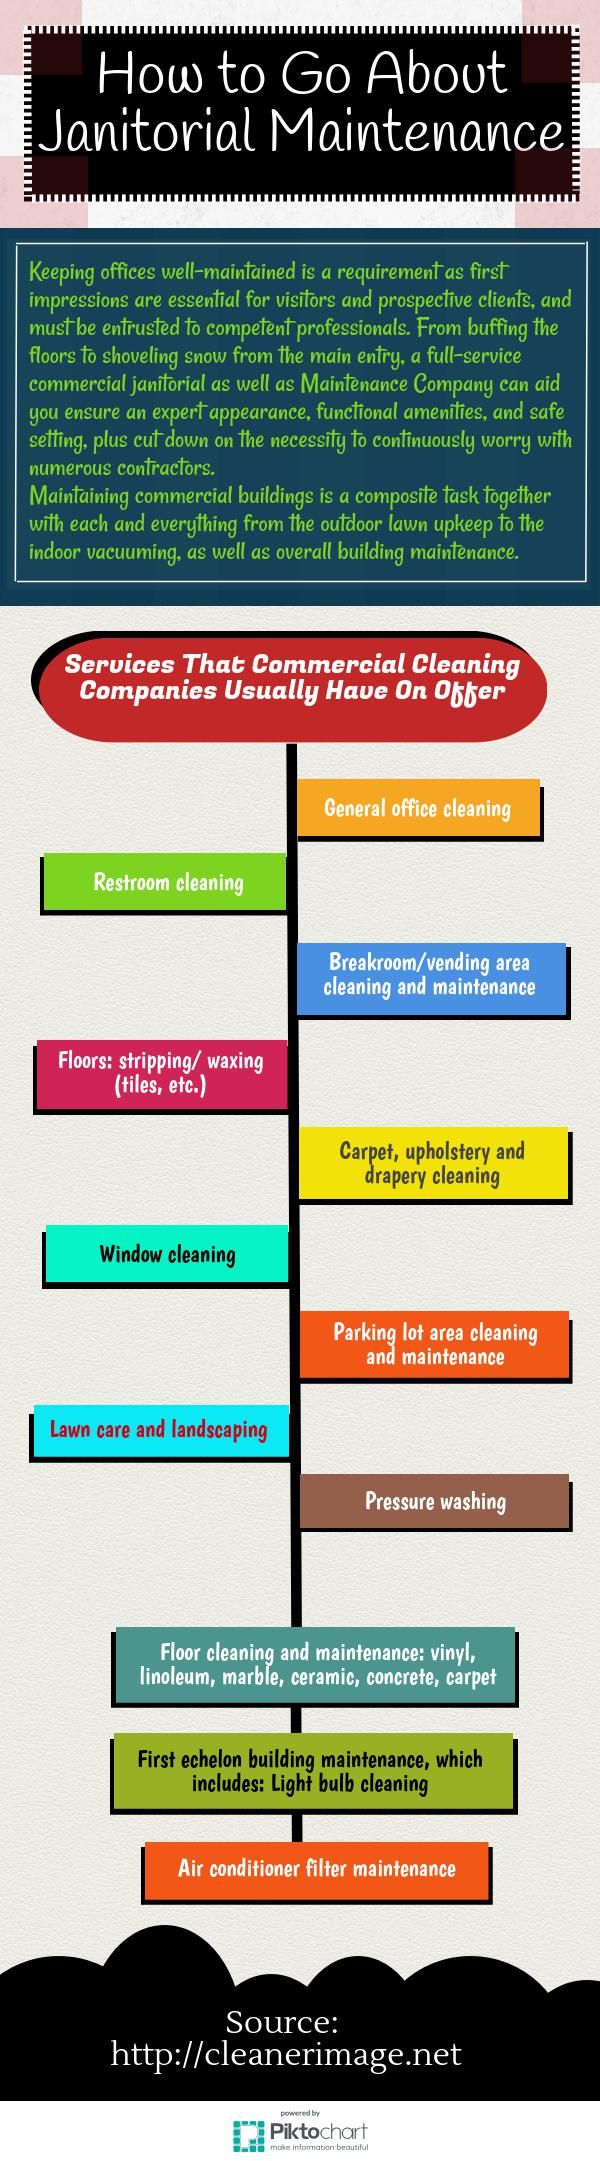 How to Go About Janitorial Maintenance Services That #Commercial #Cleaning Companies Usually Have On Offer #Los_Angeles_janitorial_maintenance Click here: http://bit.ly/2oHdfat